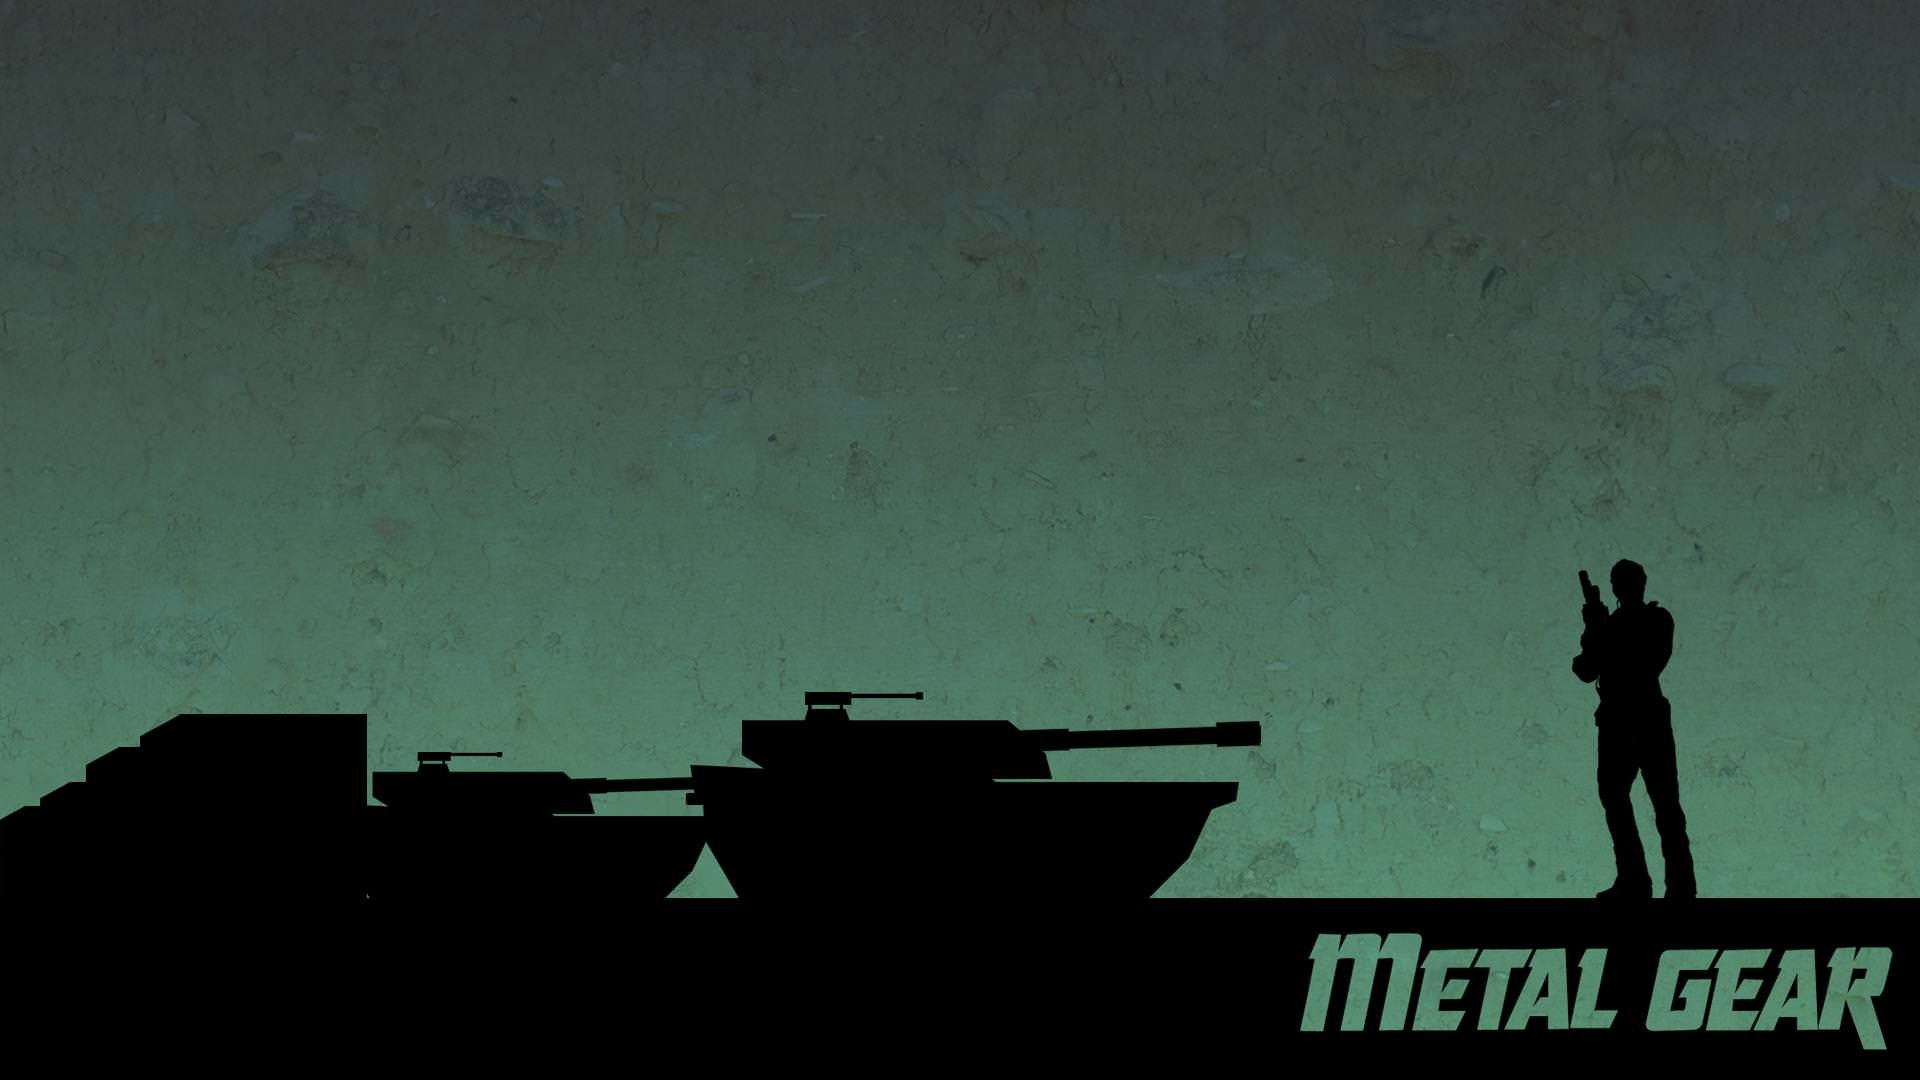 Res: 1920x1080, Metal Gear Solid Silhouette Wallpaper Collection